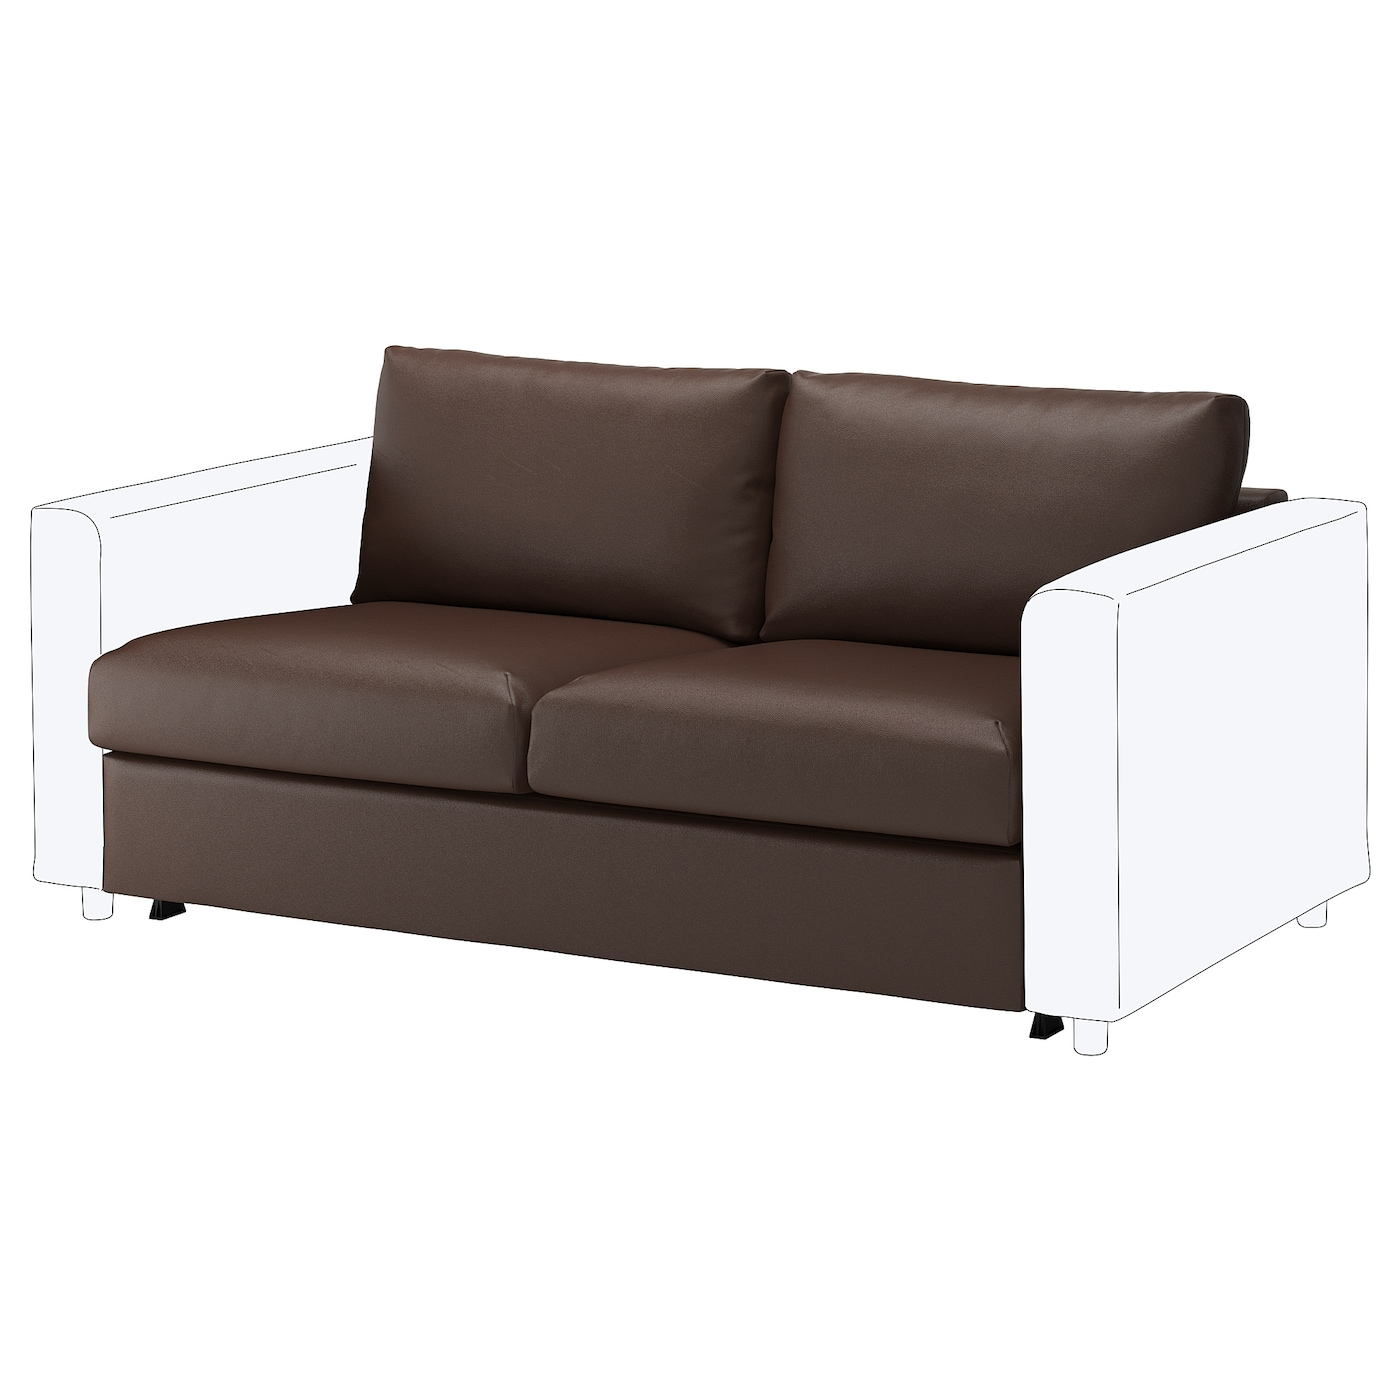 Vimle Loveseat Sleeper Section Farsta